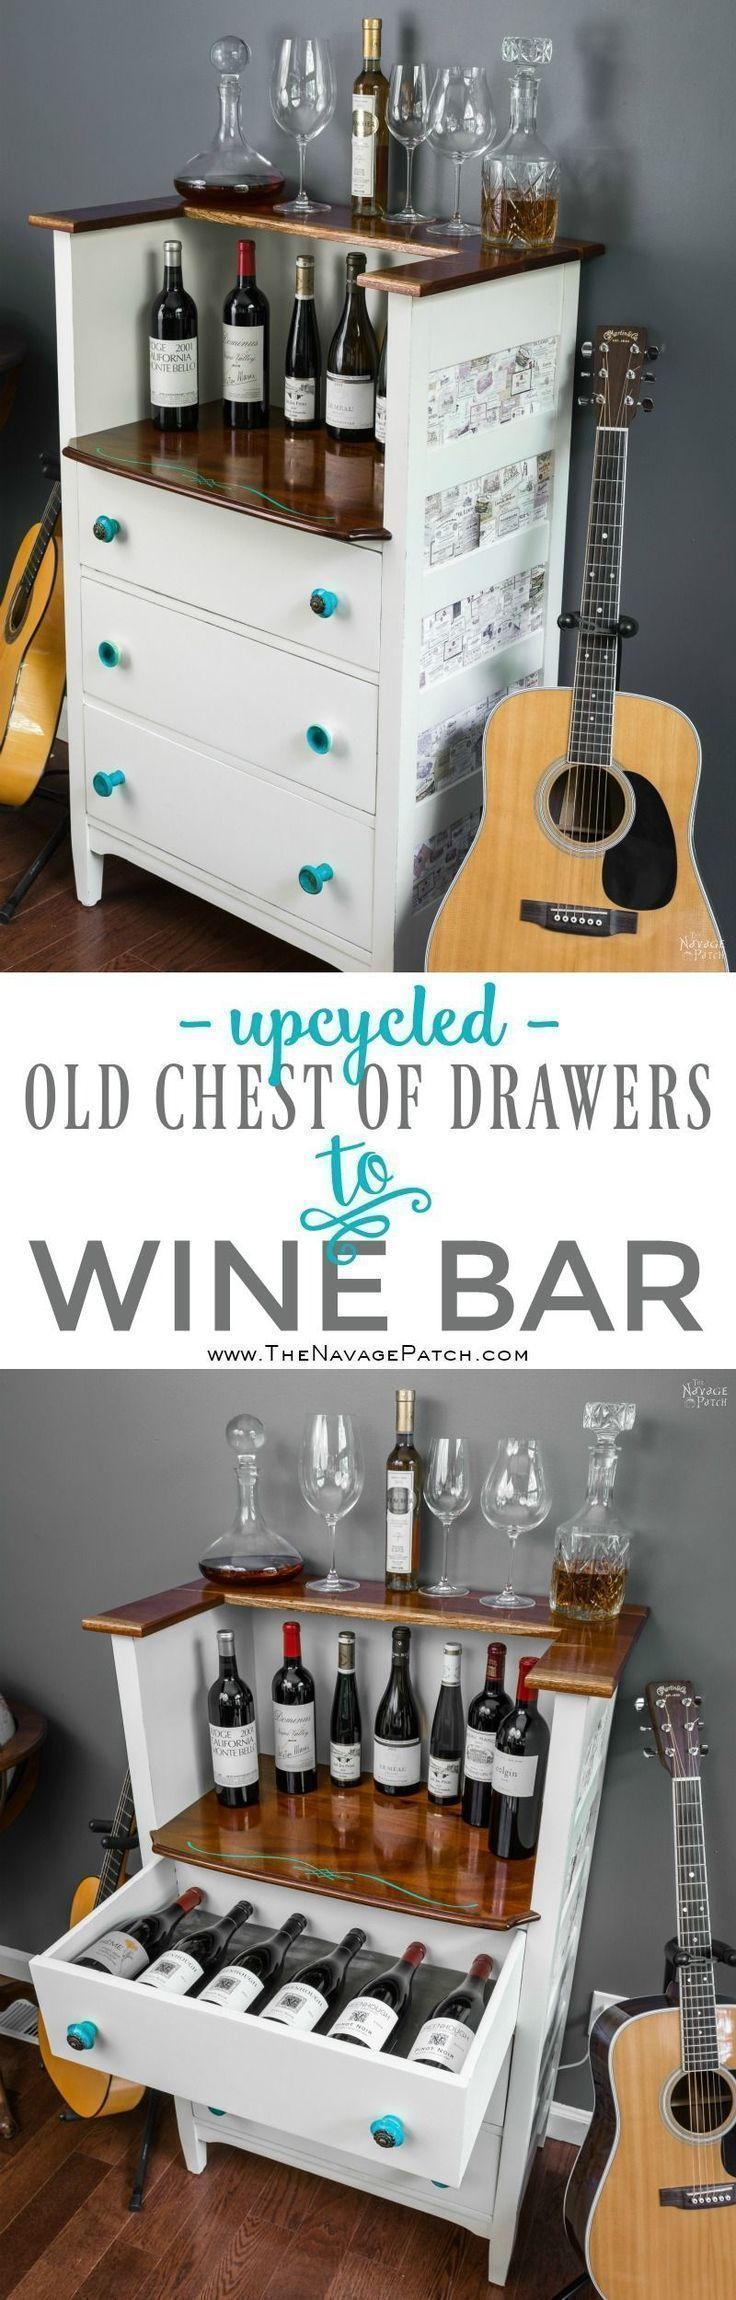 Upcycled: Old Chest of Drawers to Wine Bar | DIY furniture makeover| Upcycled furniture | DIY Wine Bar | From dresser to wine bar | Homemade chalk paint | Painted and upholstered furniture | Upholstery | Farmhouse style furniture | Annie Sloan Old White color | Fabric onlay | Painted wood furniture |Transformed furniture | Before & After | TheNavagePatch.com #paintedfurniturecolors #paintedfurniturebeforeandafter #diydressermakeover #upholsteryfurnitureideas